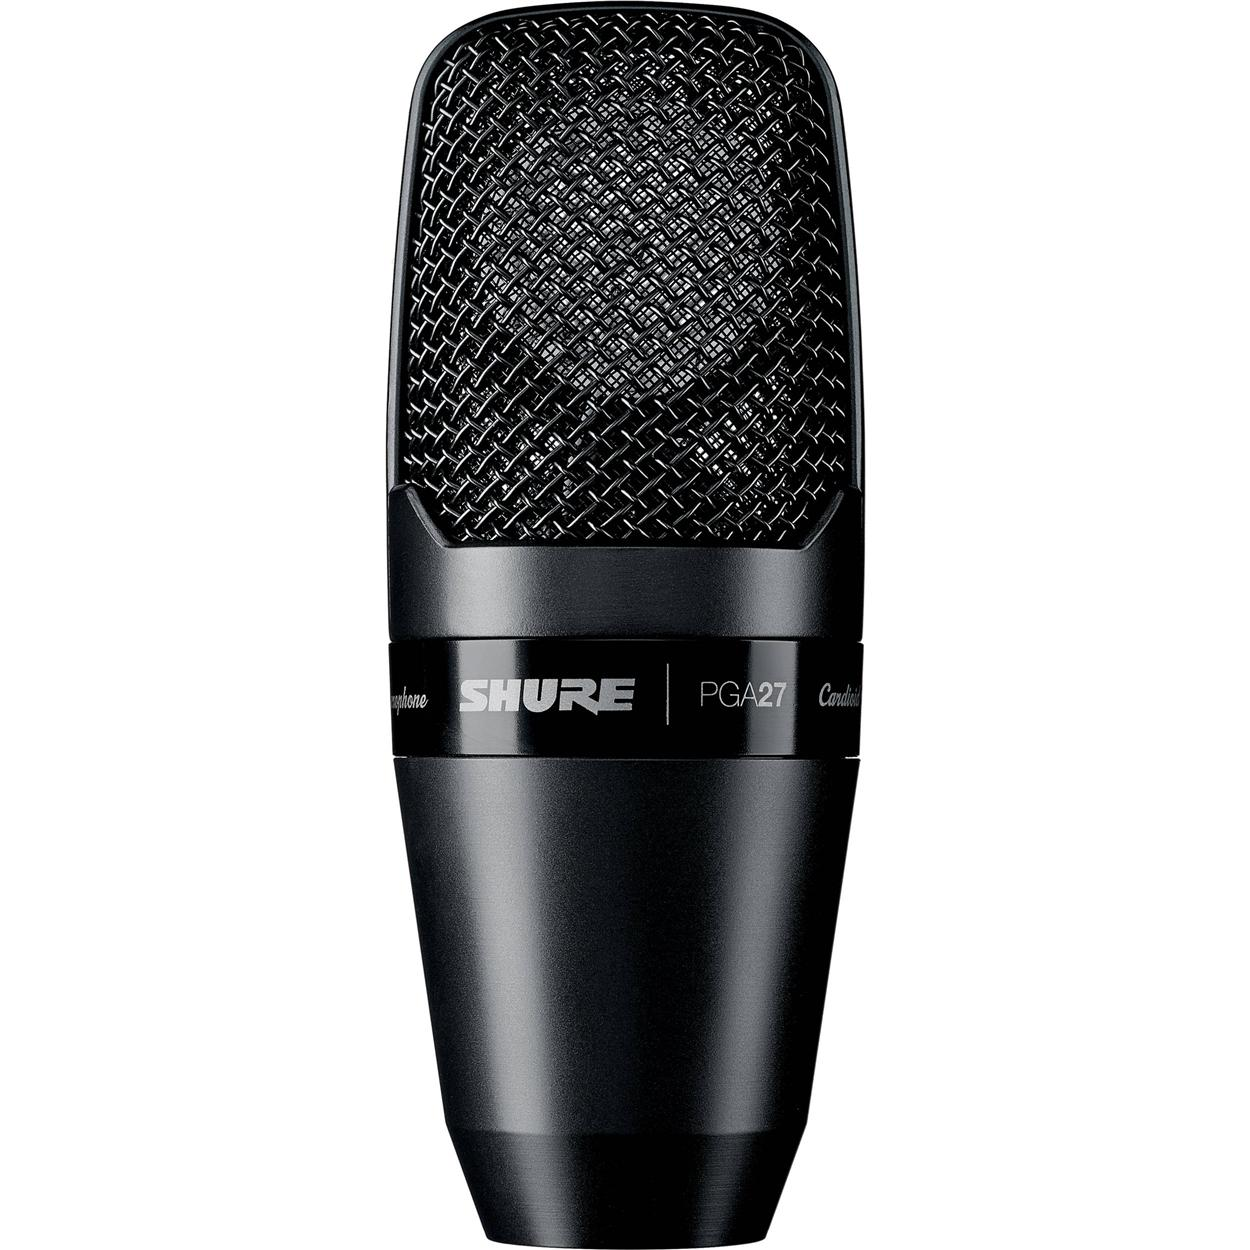 SHURE PGA27 - Large Diaphragm Side-Address Cardioid Condenser Mic